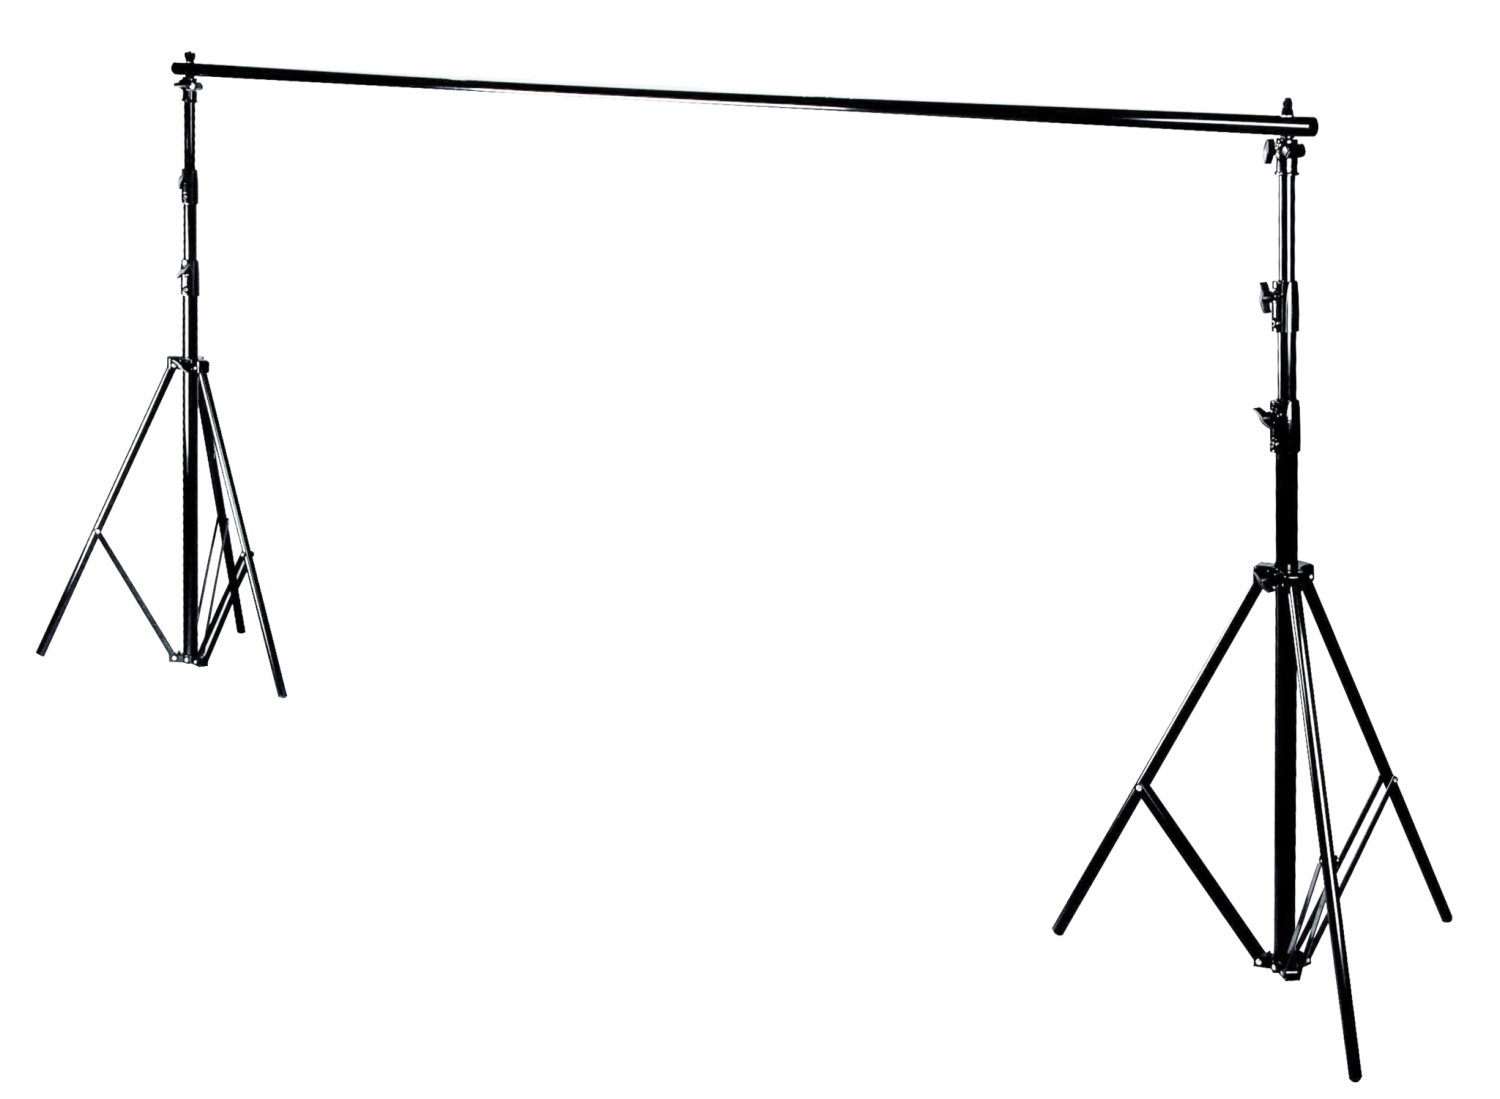 Backdrop holder kit